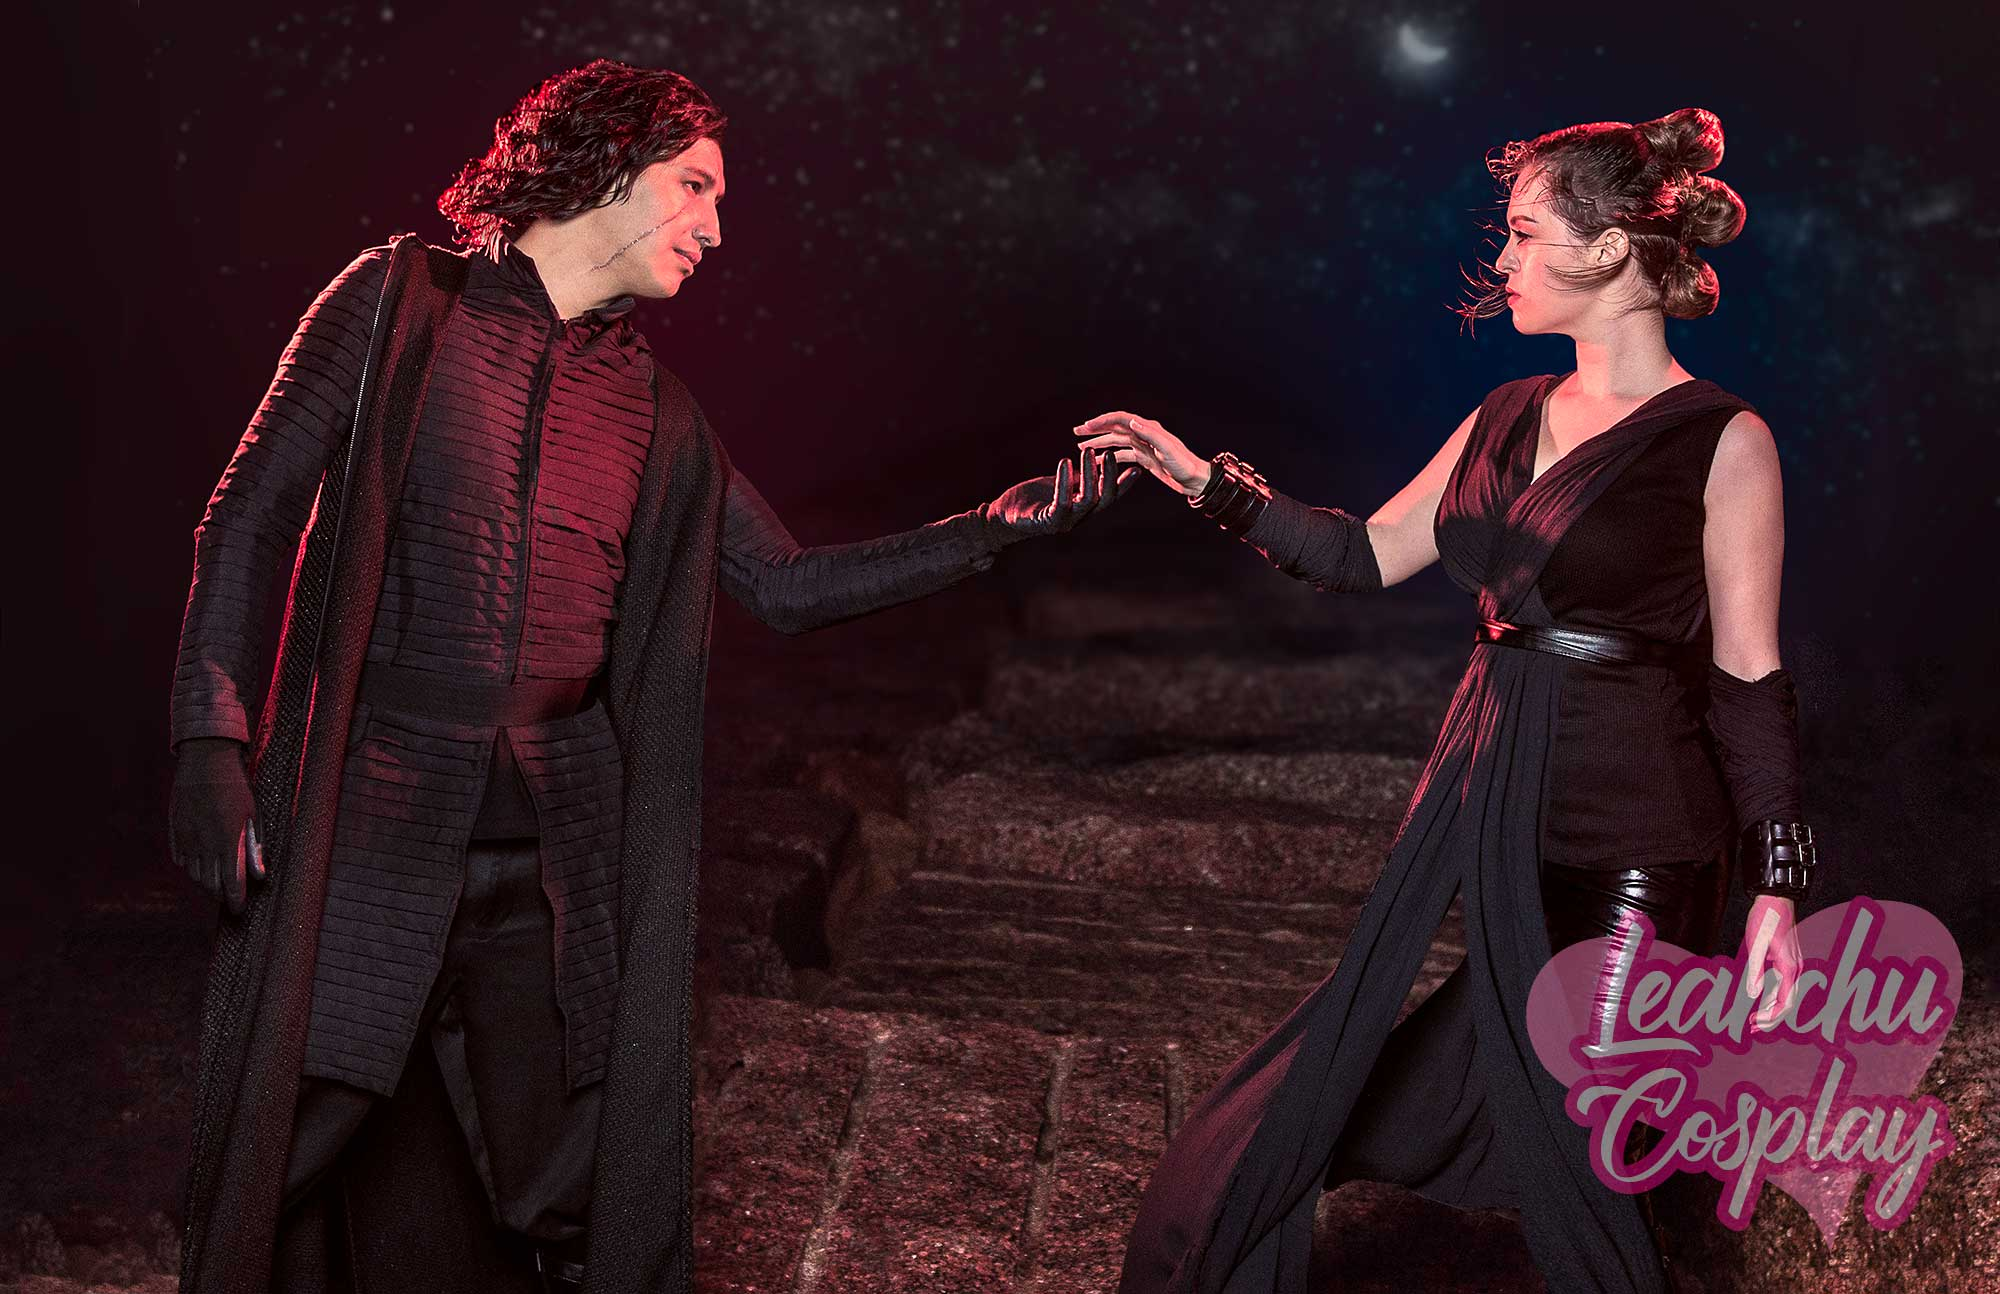 Dark Rey And Kylo Ren Reylo Cosplay Star Wars The Rise Of Skywalker Sold By Leahchu Cosplay On Storenvy